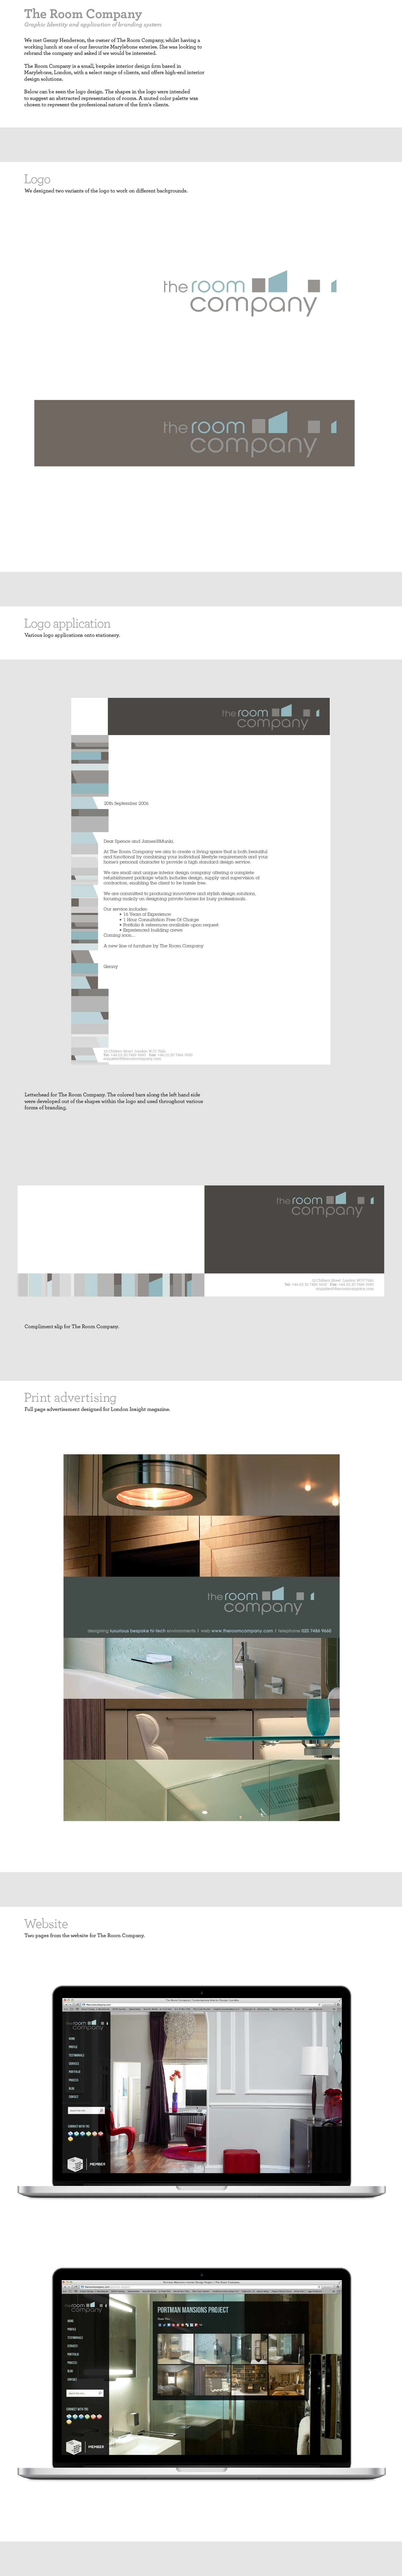 The Room Company - Graphic Idnetity